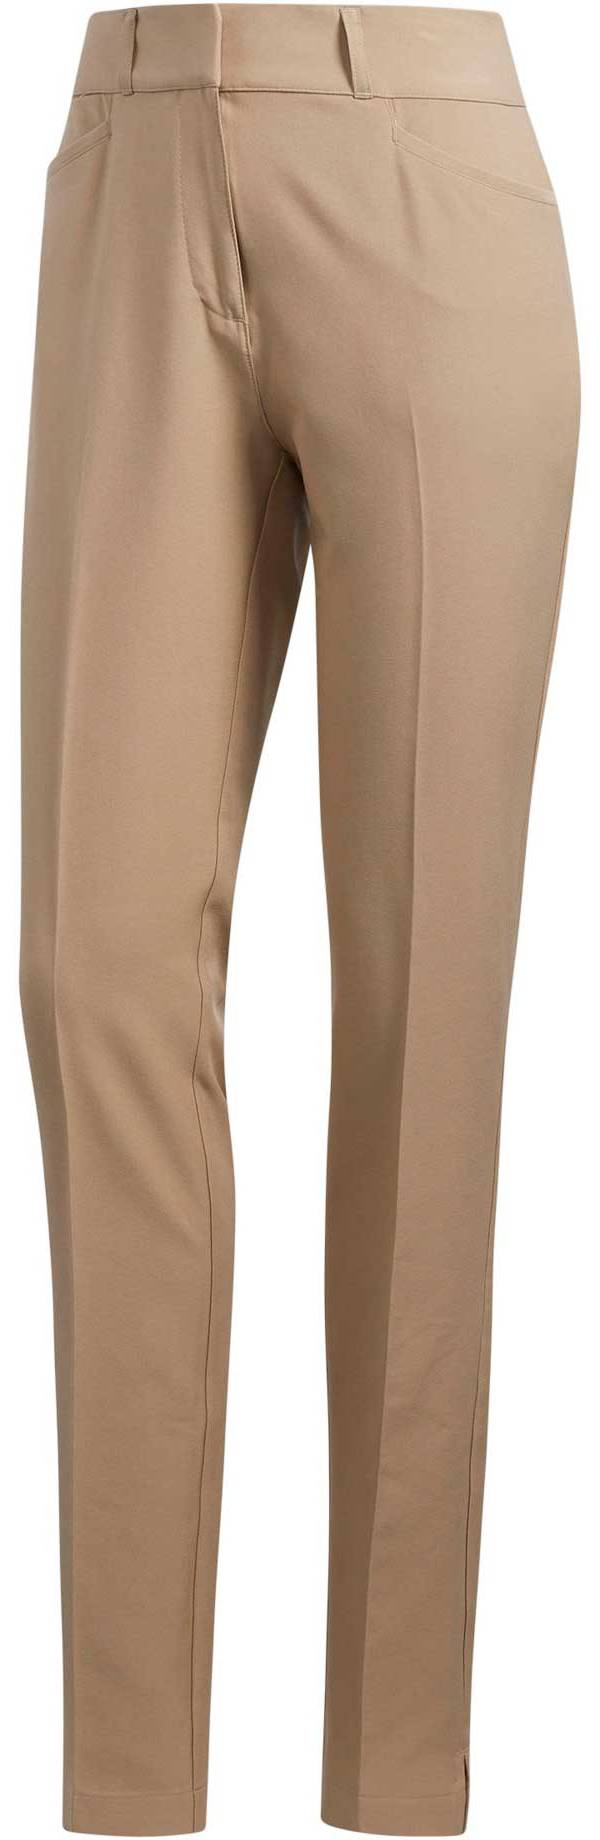 adidas Women's Full-Length Golf Pant product image